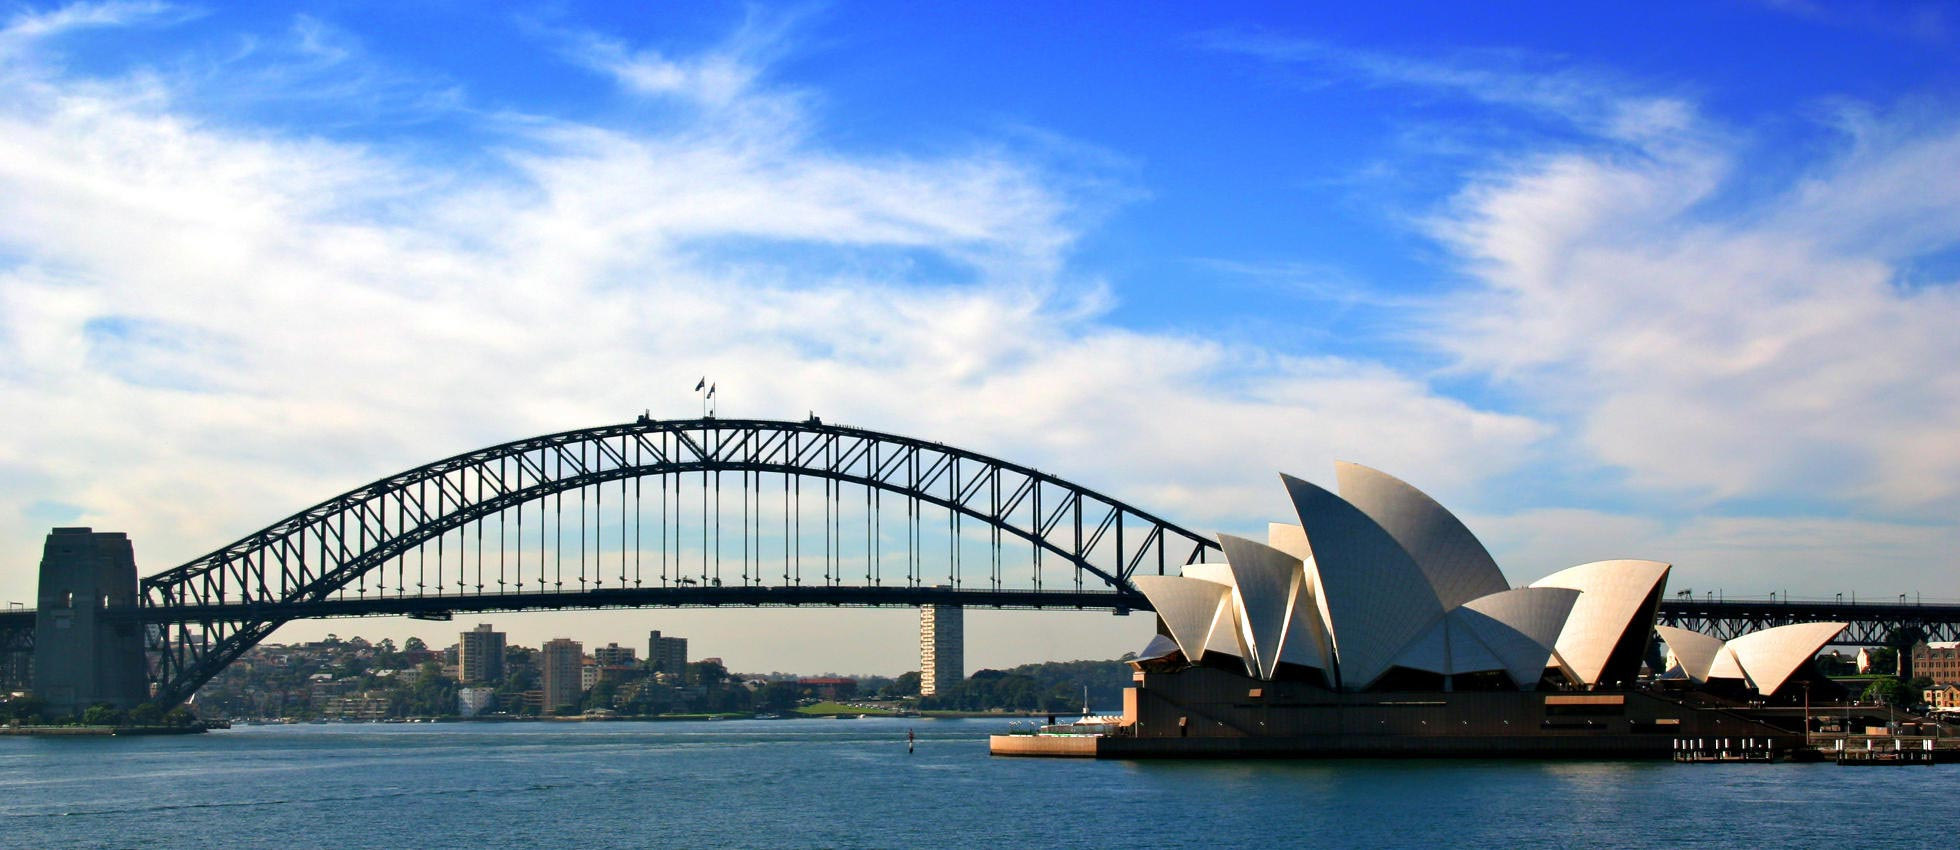 Explore Sydney and see the Iconic Opera House